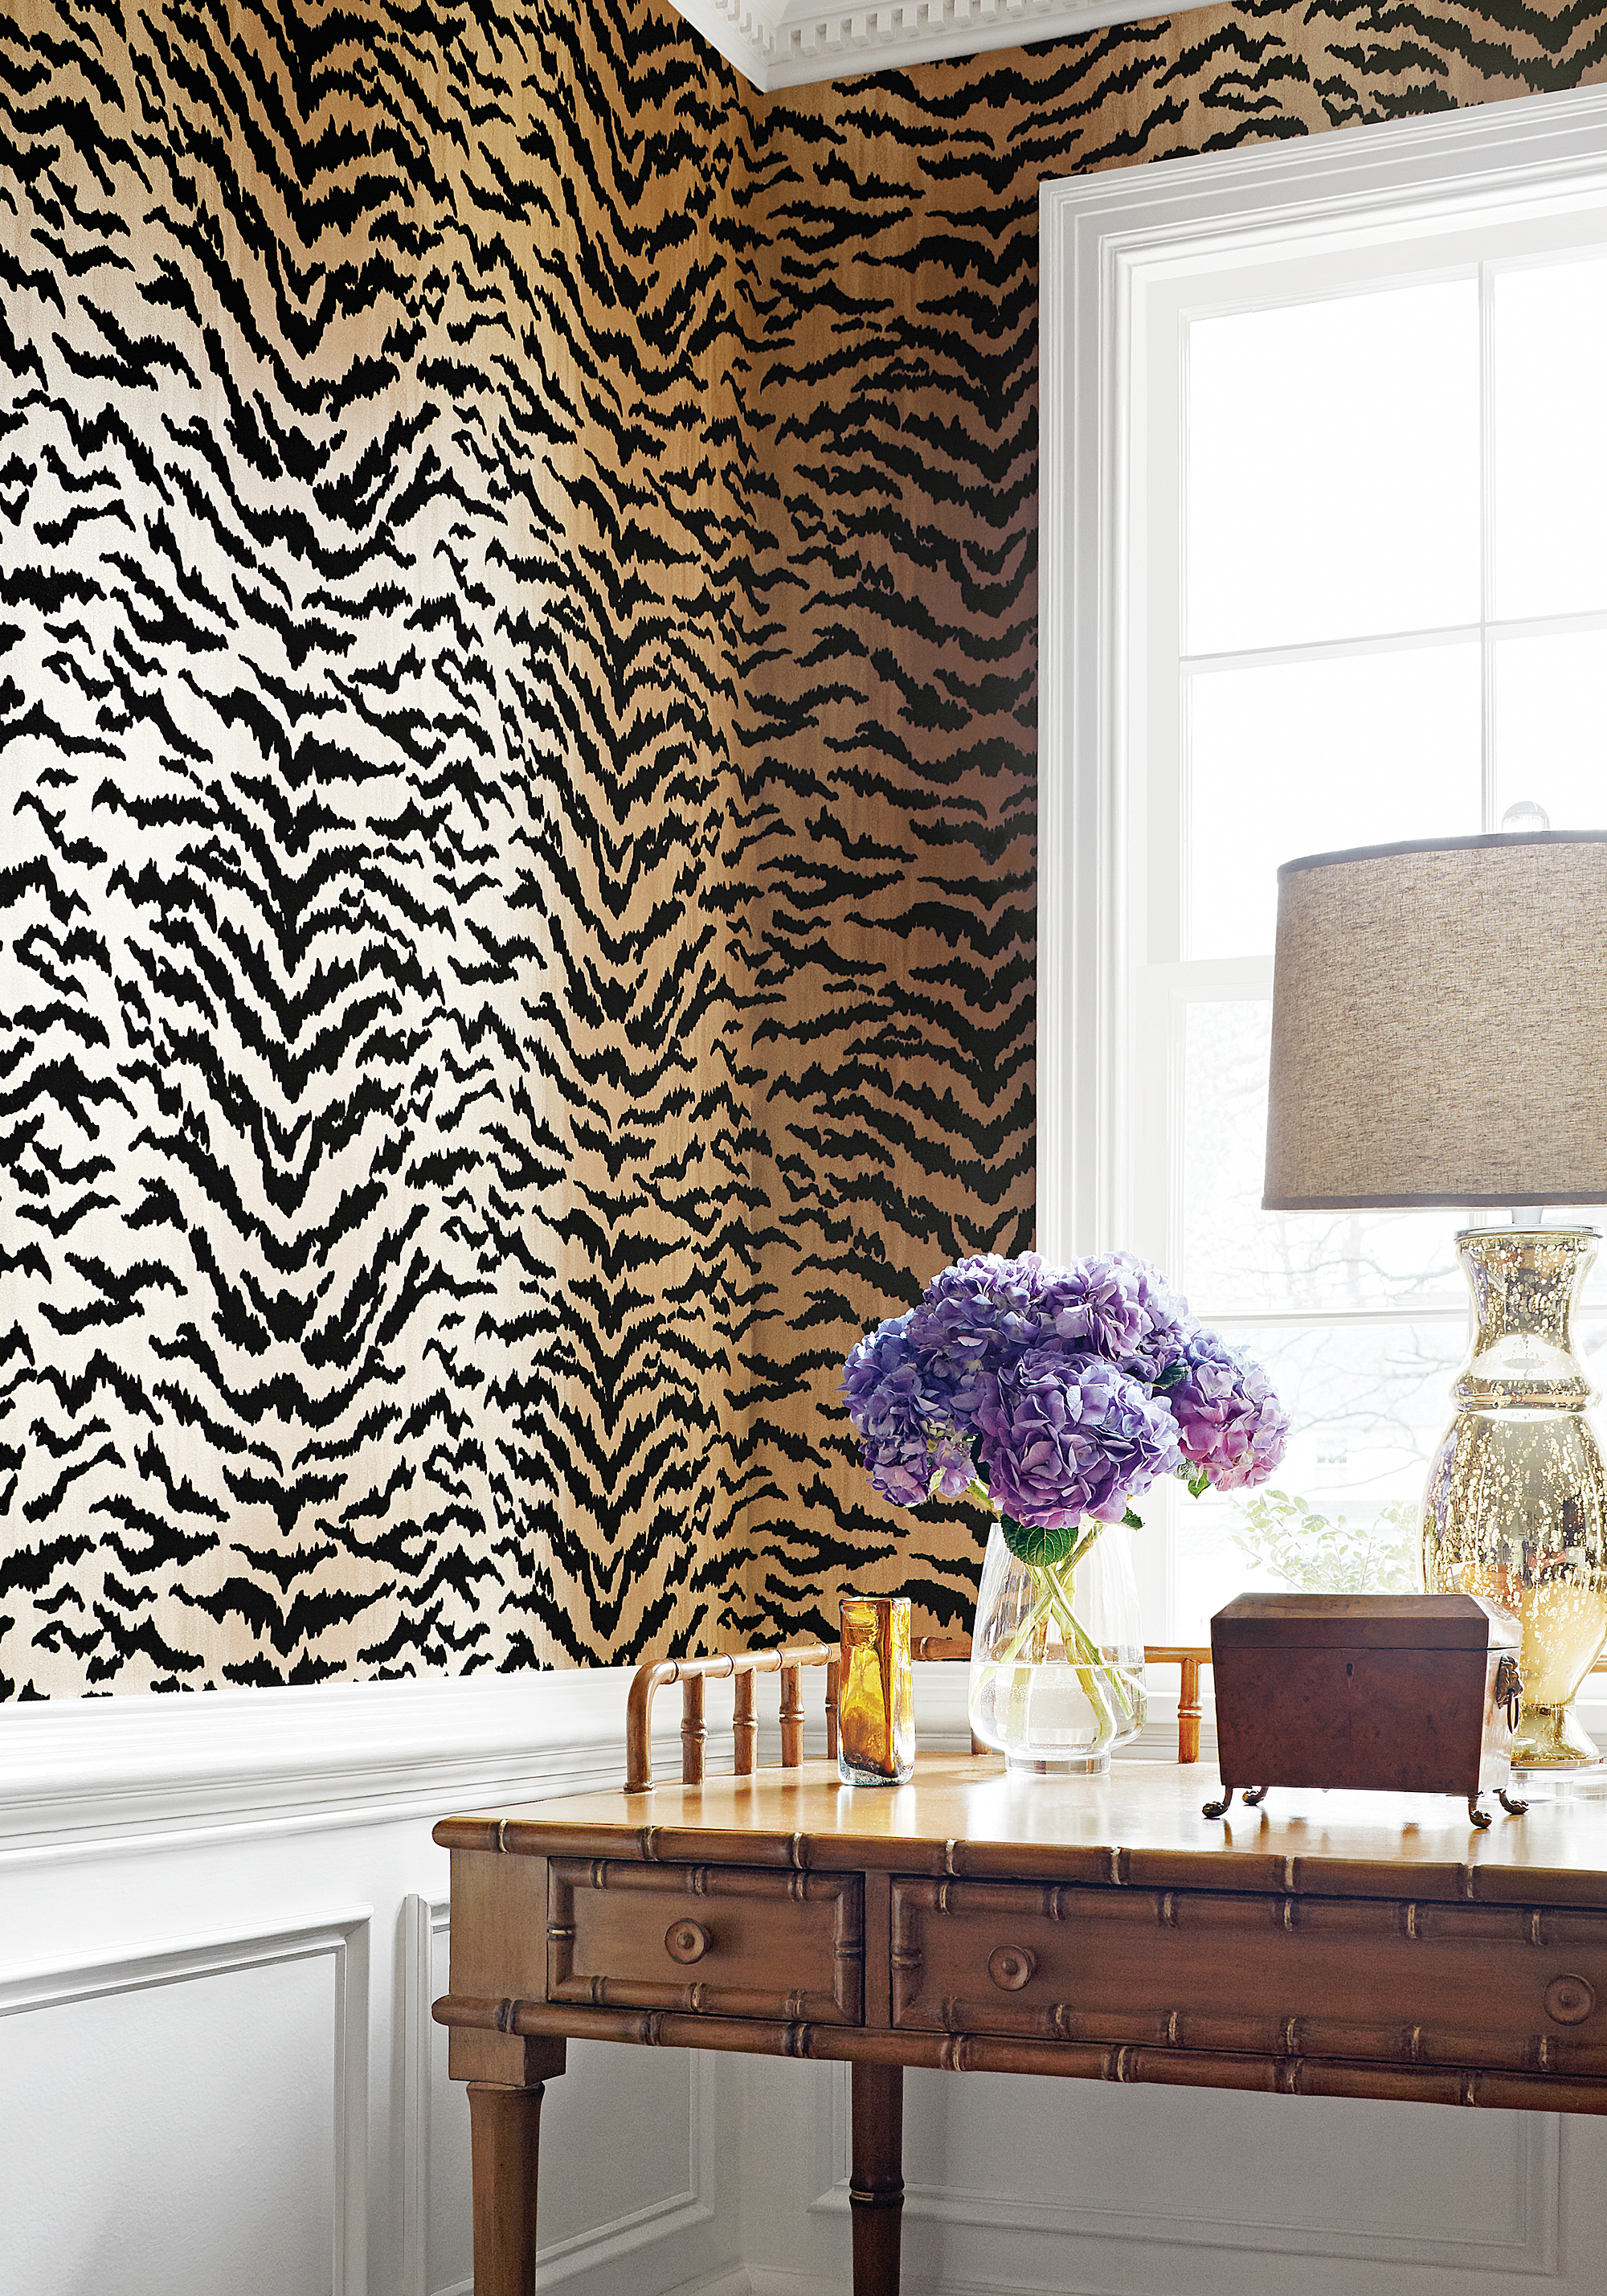 Wallpapers For Walls Living Room Part - 19: ... Amazing Animal Print Wallpaper Ideas Shoproomideas Living Room ...